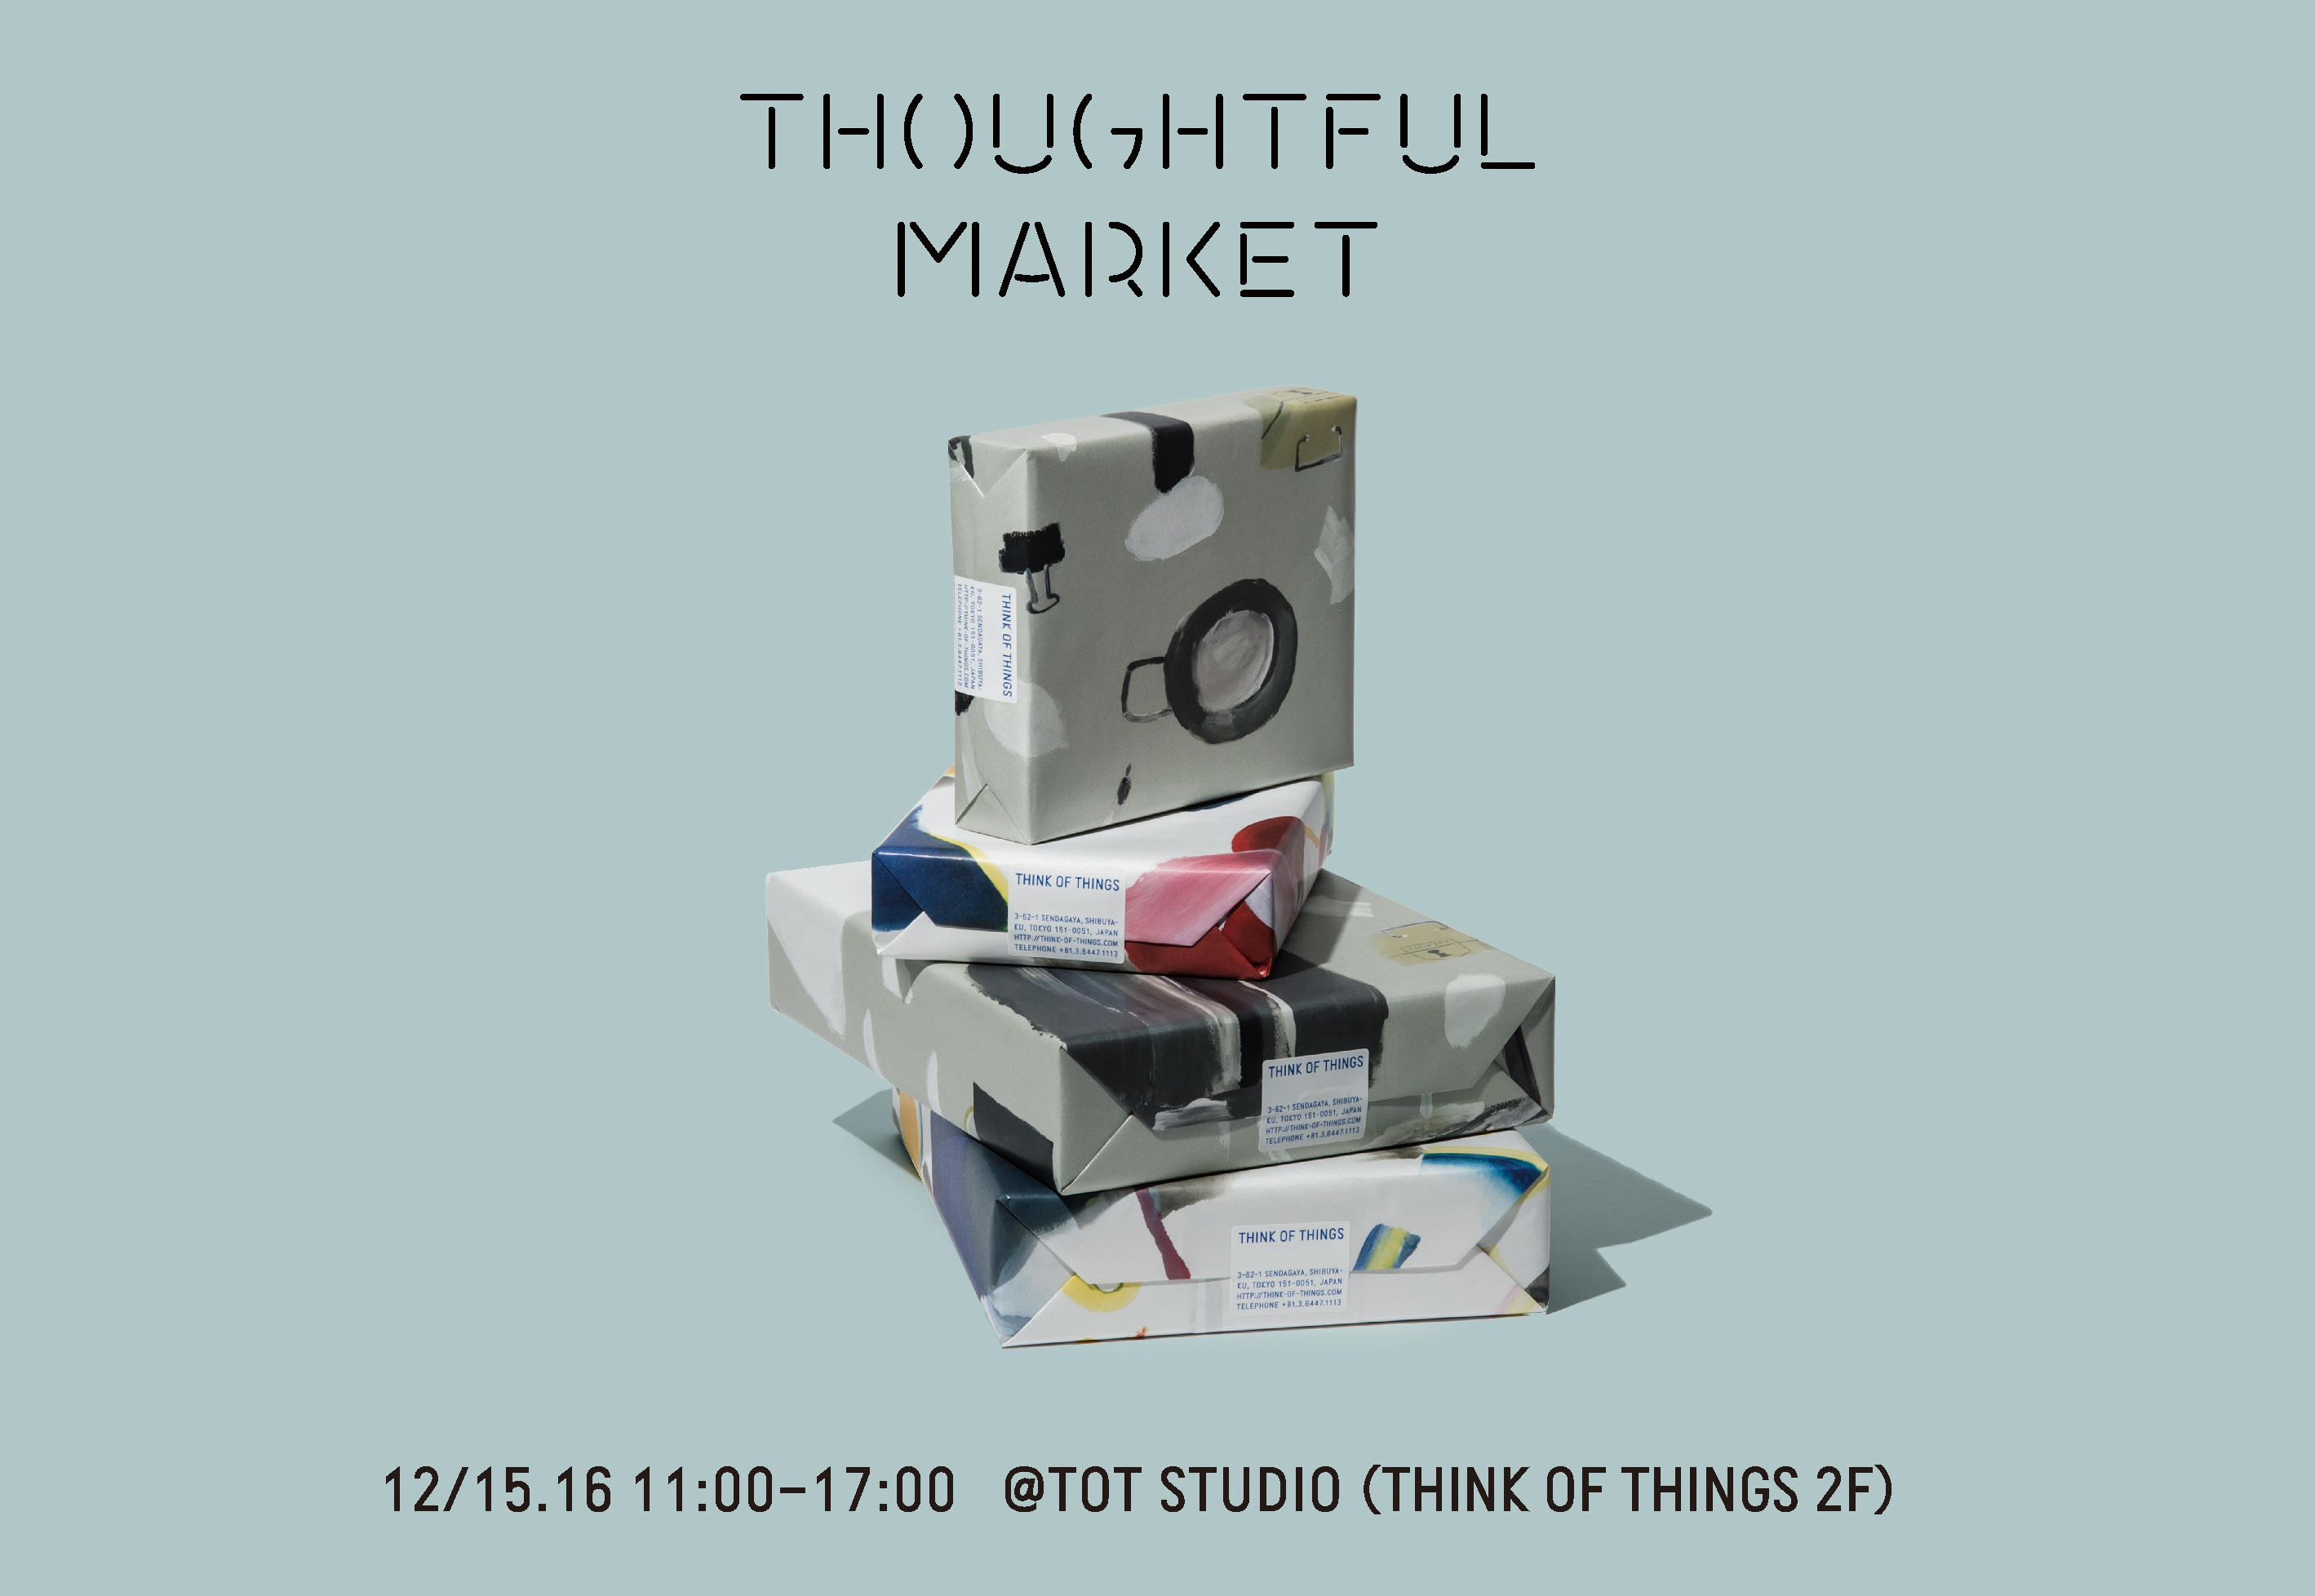 thoughtful market開催 news think of things